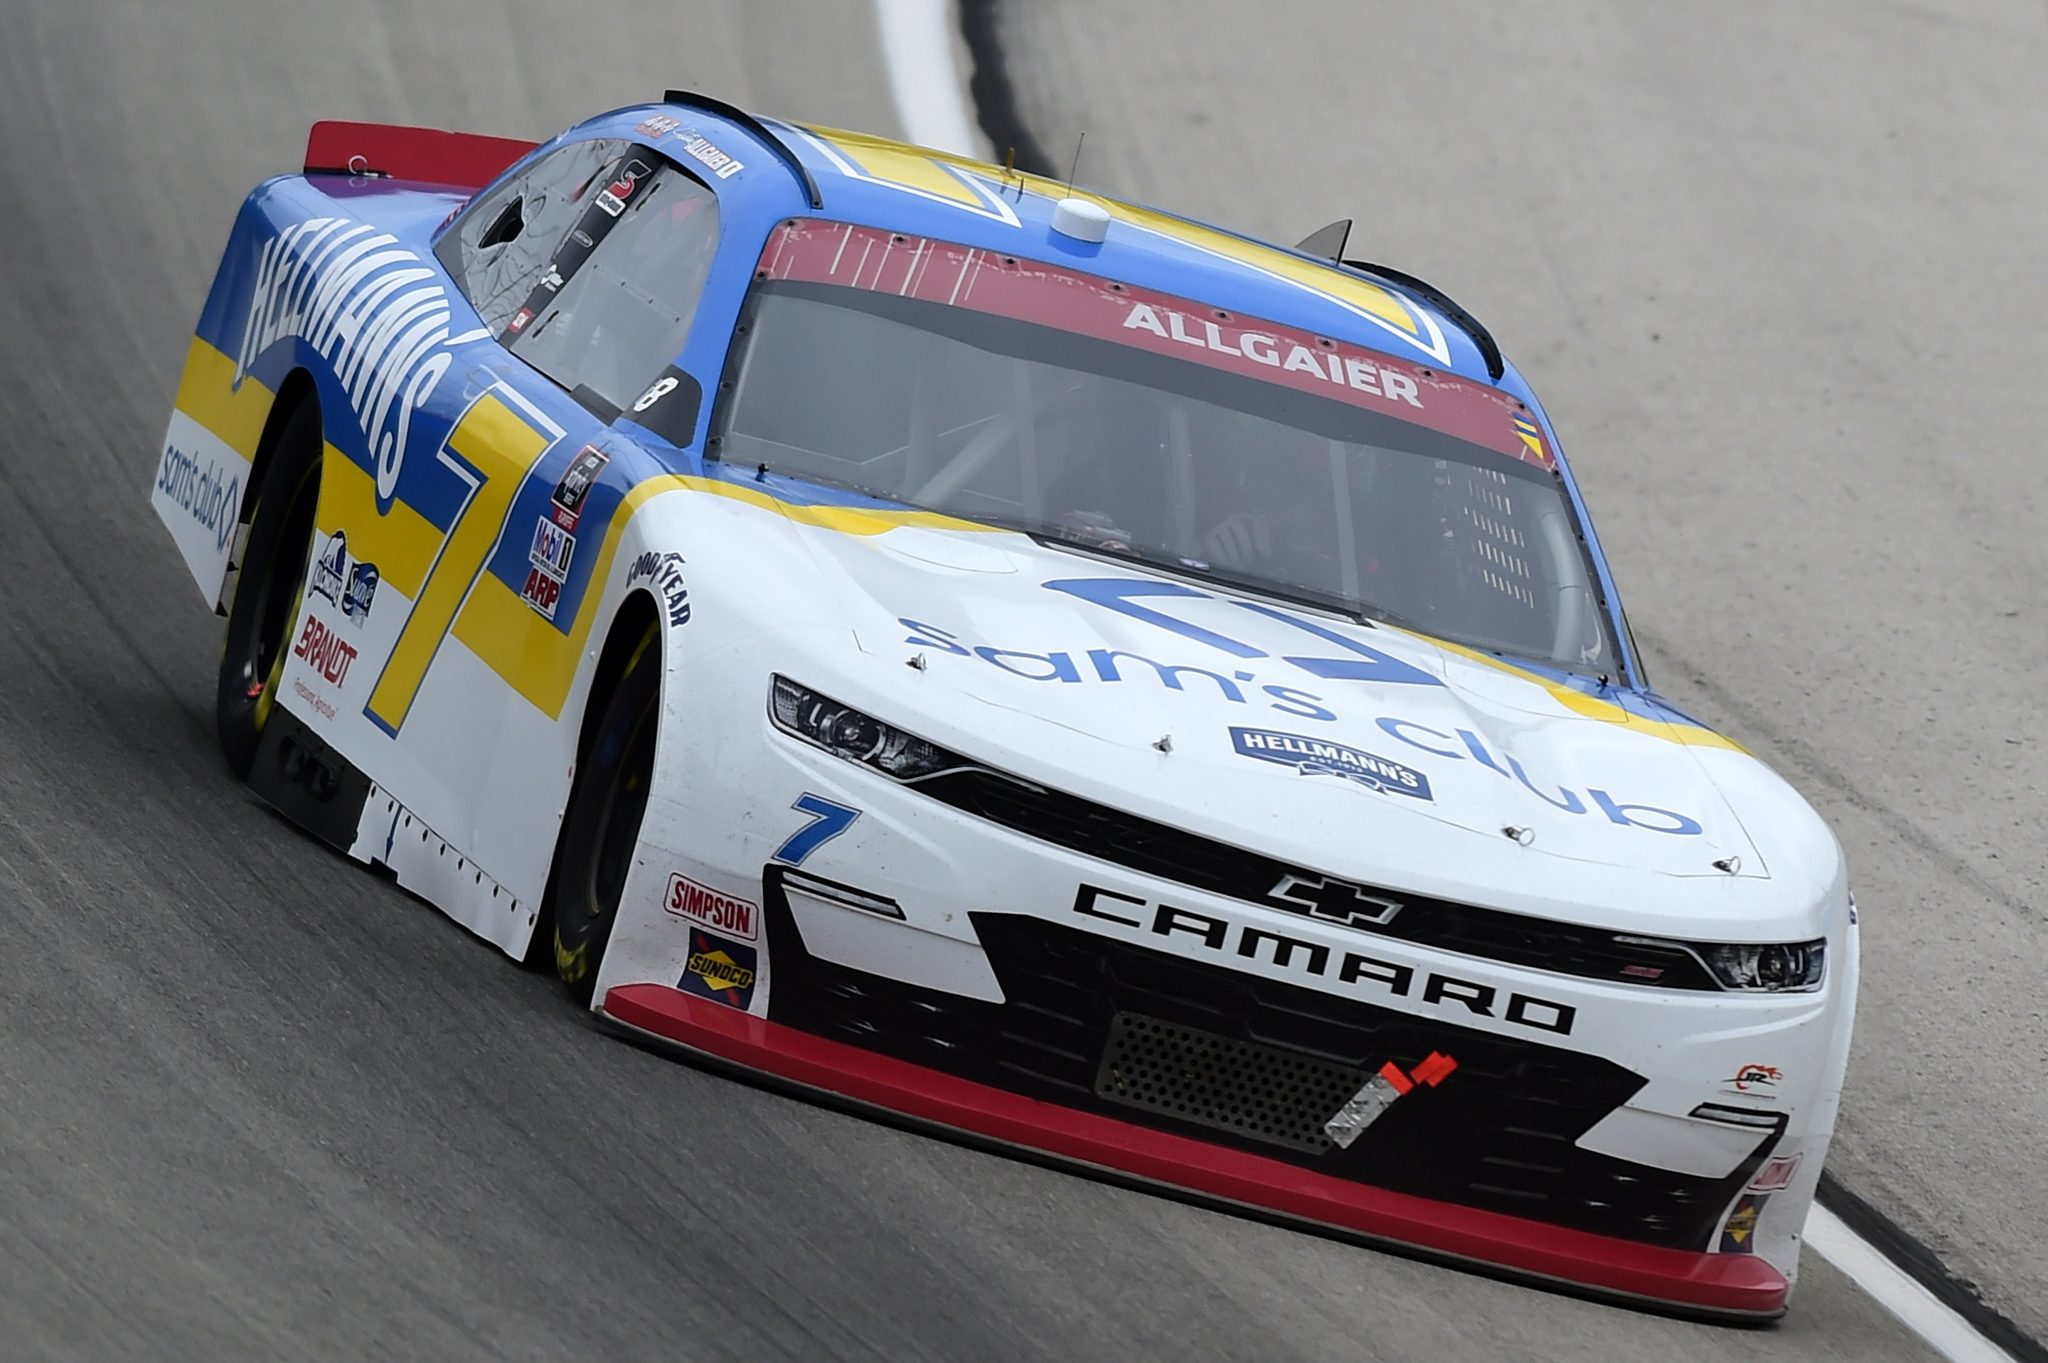 FORT WORTH, TEXAS - OCTOBER 24: Justin Allgaier, driver of the #7 Sam's Club/Hellmann's Chevrolet, drives during the NASCAR Xfinity Series O'Reilly Auto Parts 300 at Texas Motor Speedway on October 24, 2020 in Fort Worth, Texas. (Photo by Jared C. Tilton/Getty Images) | Getty Images